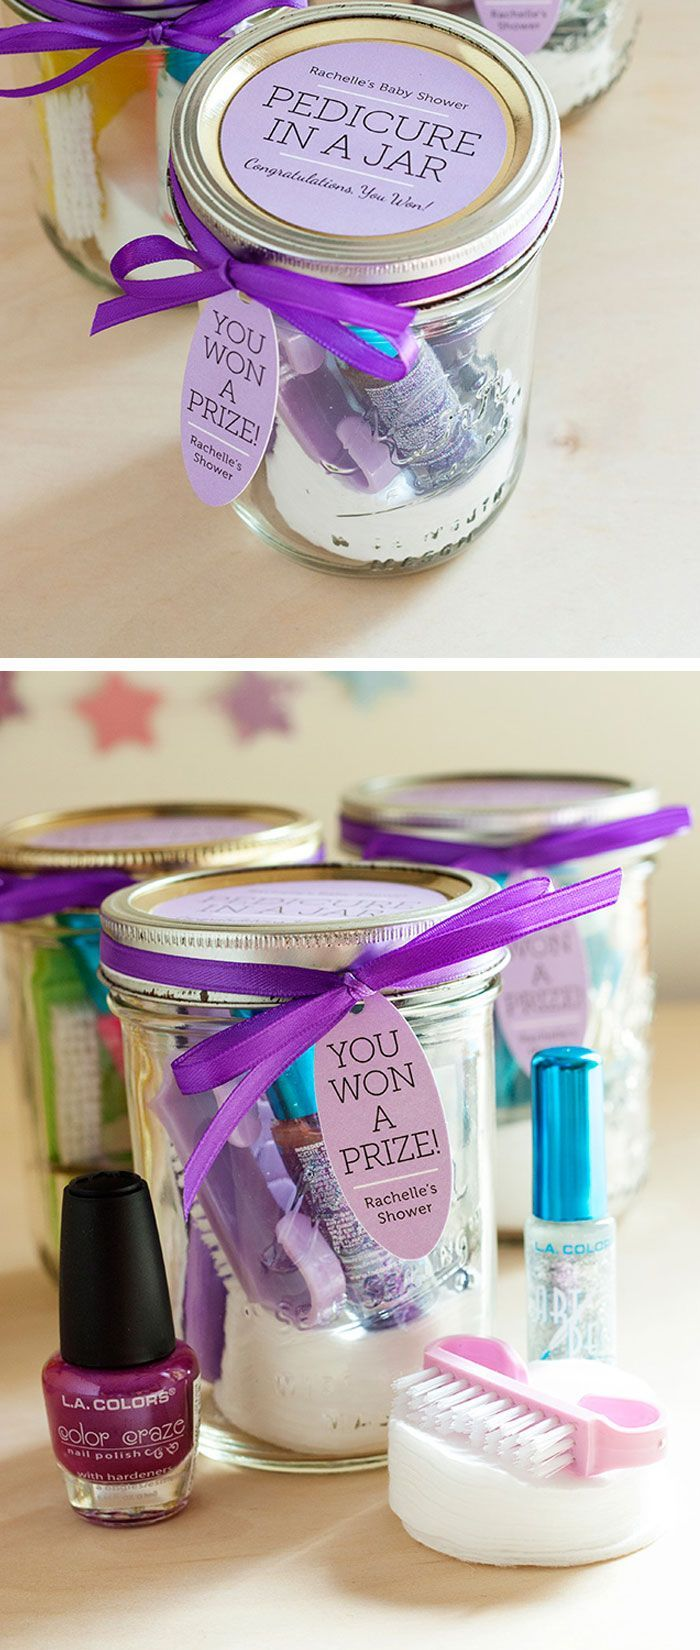 Holiday gift ideas you can give or make with mason jars. If you want a unique present to give to a friend or loved one, you should consider purchasing or DIY'ing something in a mason jar.